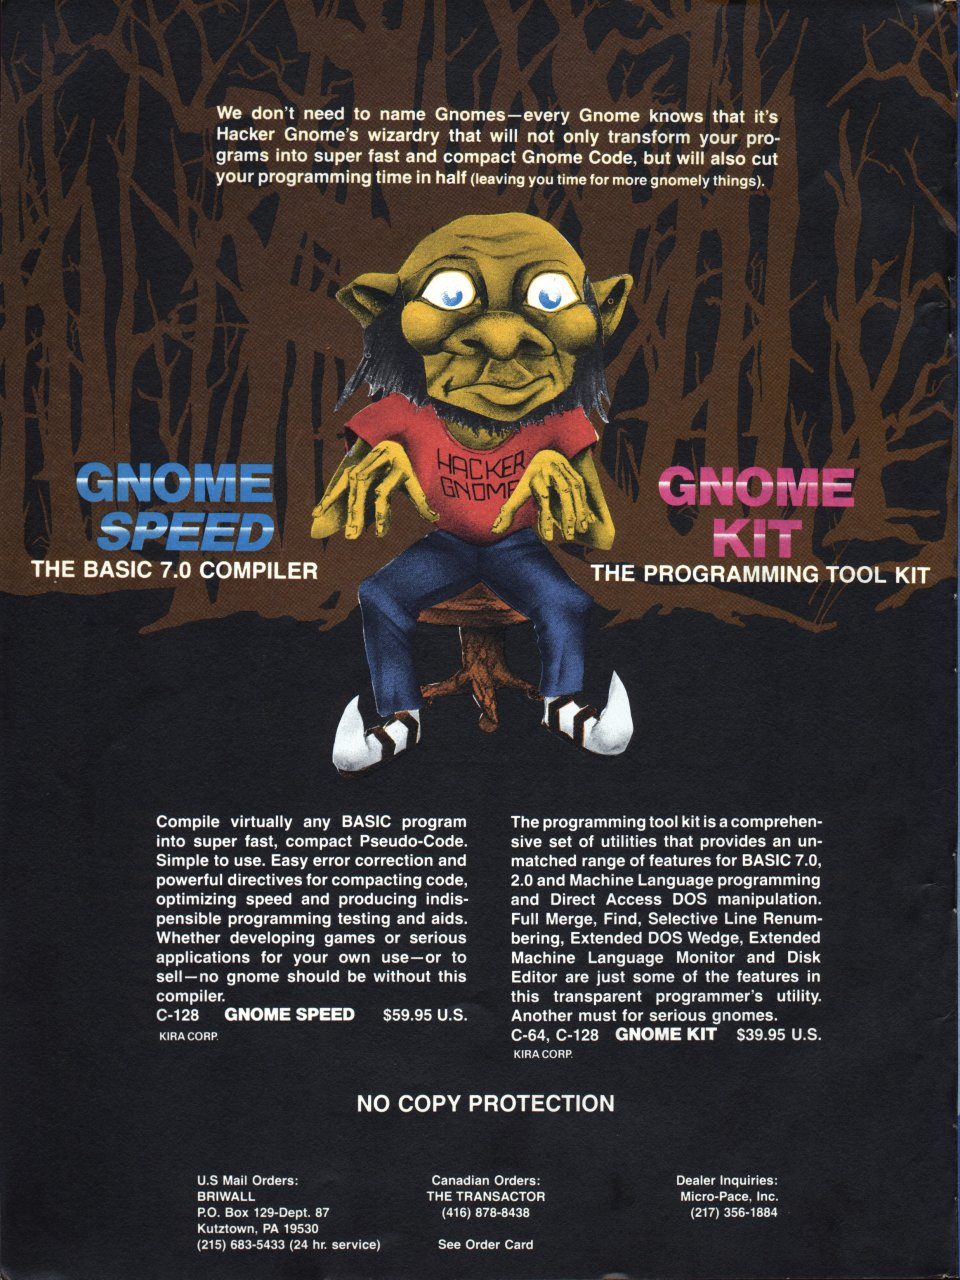 [Advertisement: GNOME Speed (BASIC 7.0 compiler) and GNOME Kit (programming, designing and debugging aids for BASIC and machine language programming) by SM Software, Inc.]